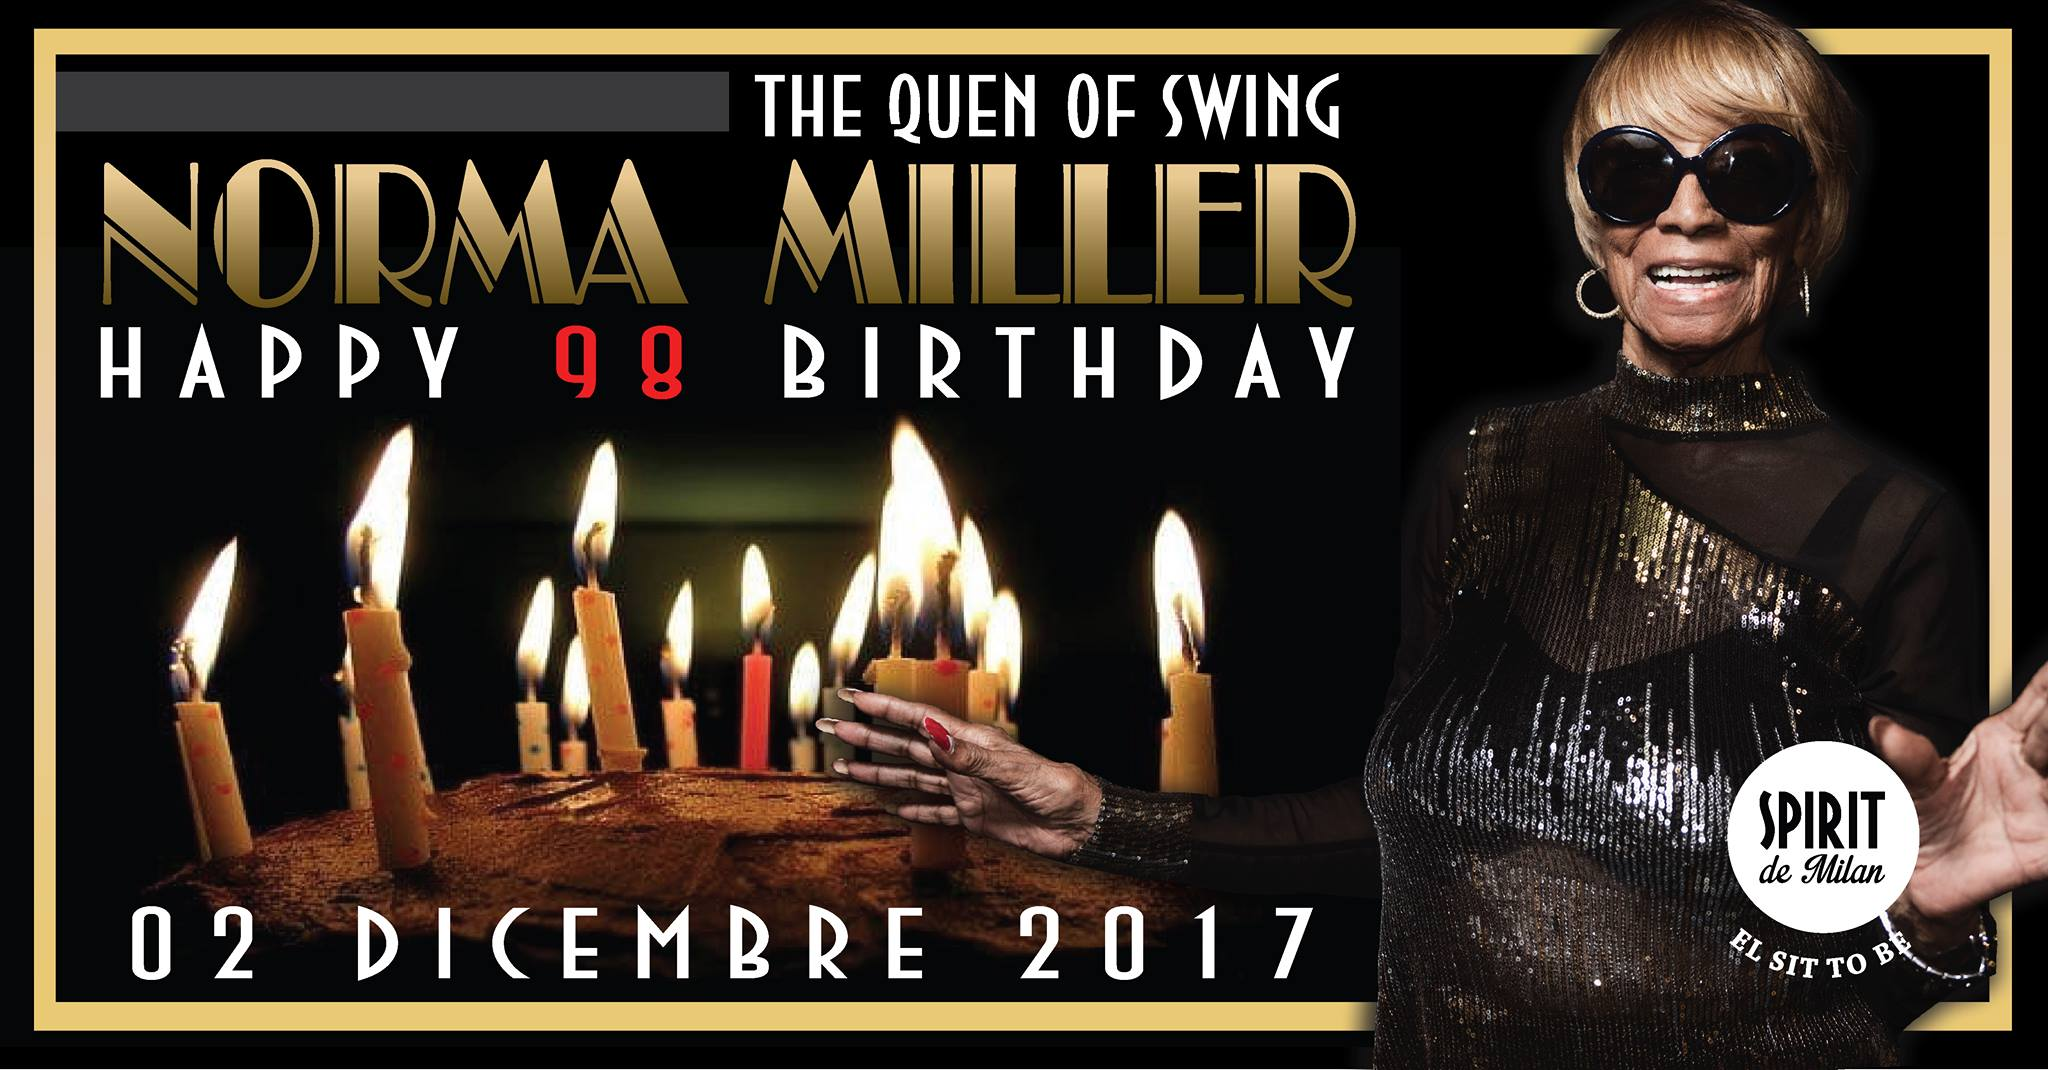 Torna the Queen of Swing, Norma Miller! Happy 98 Birthday